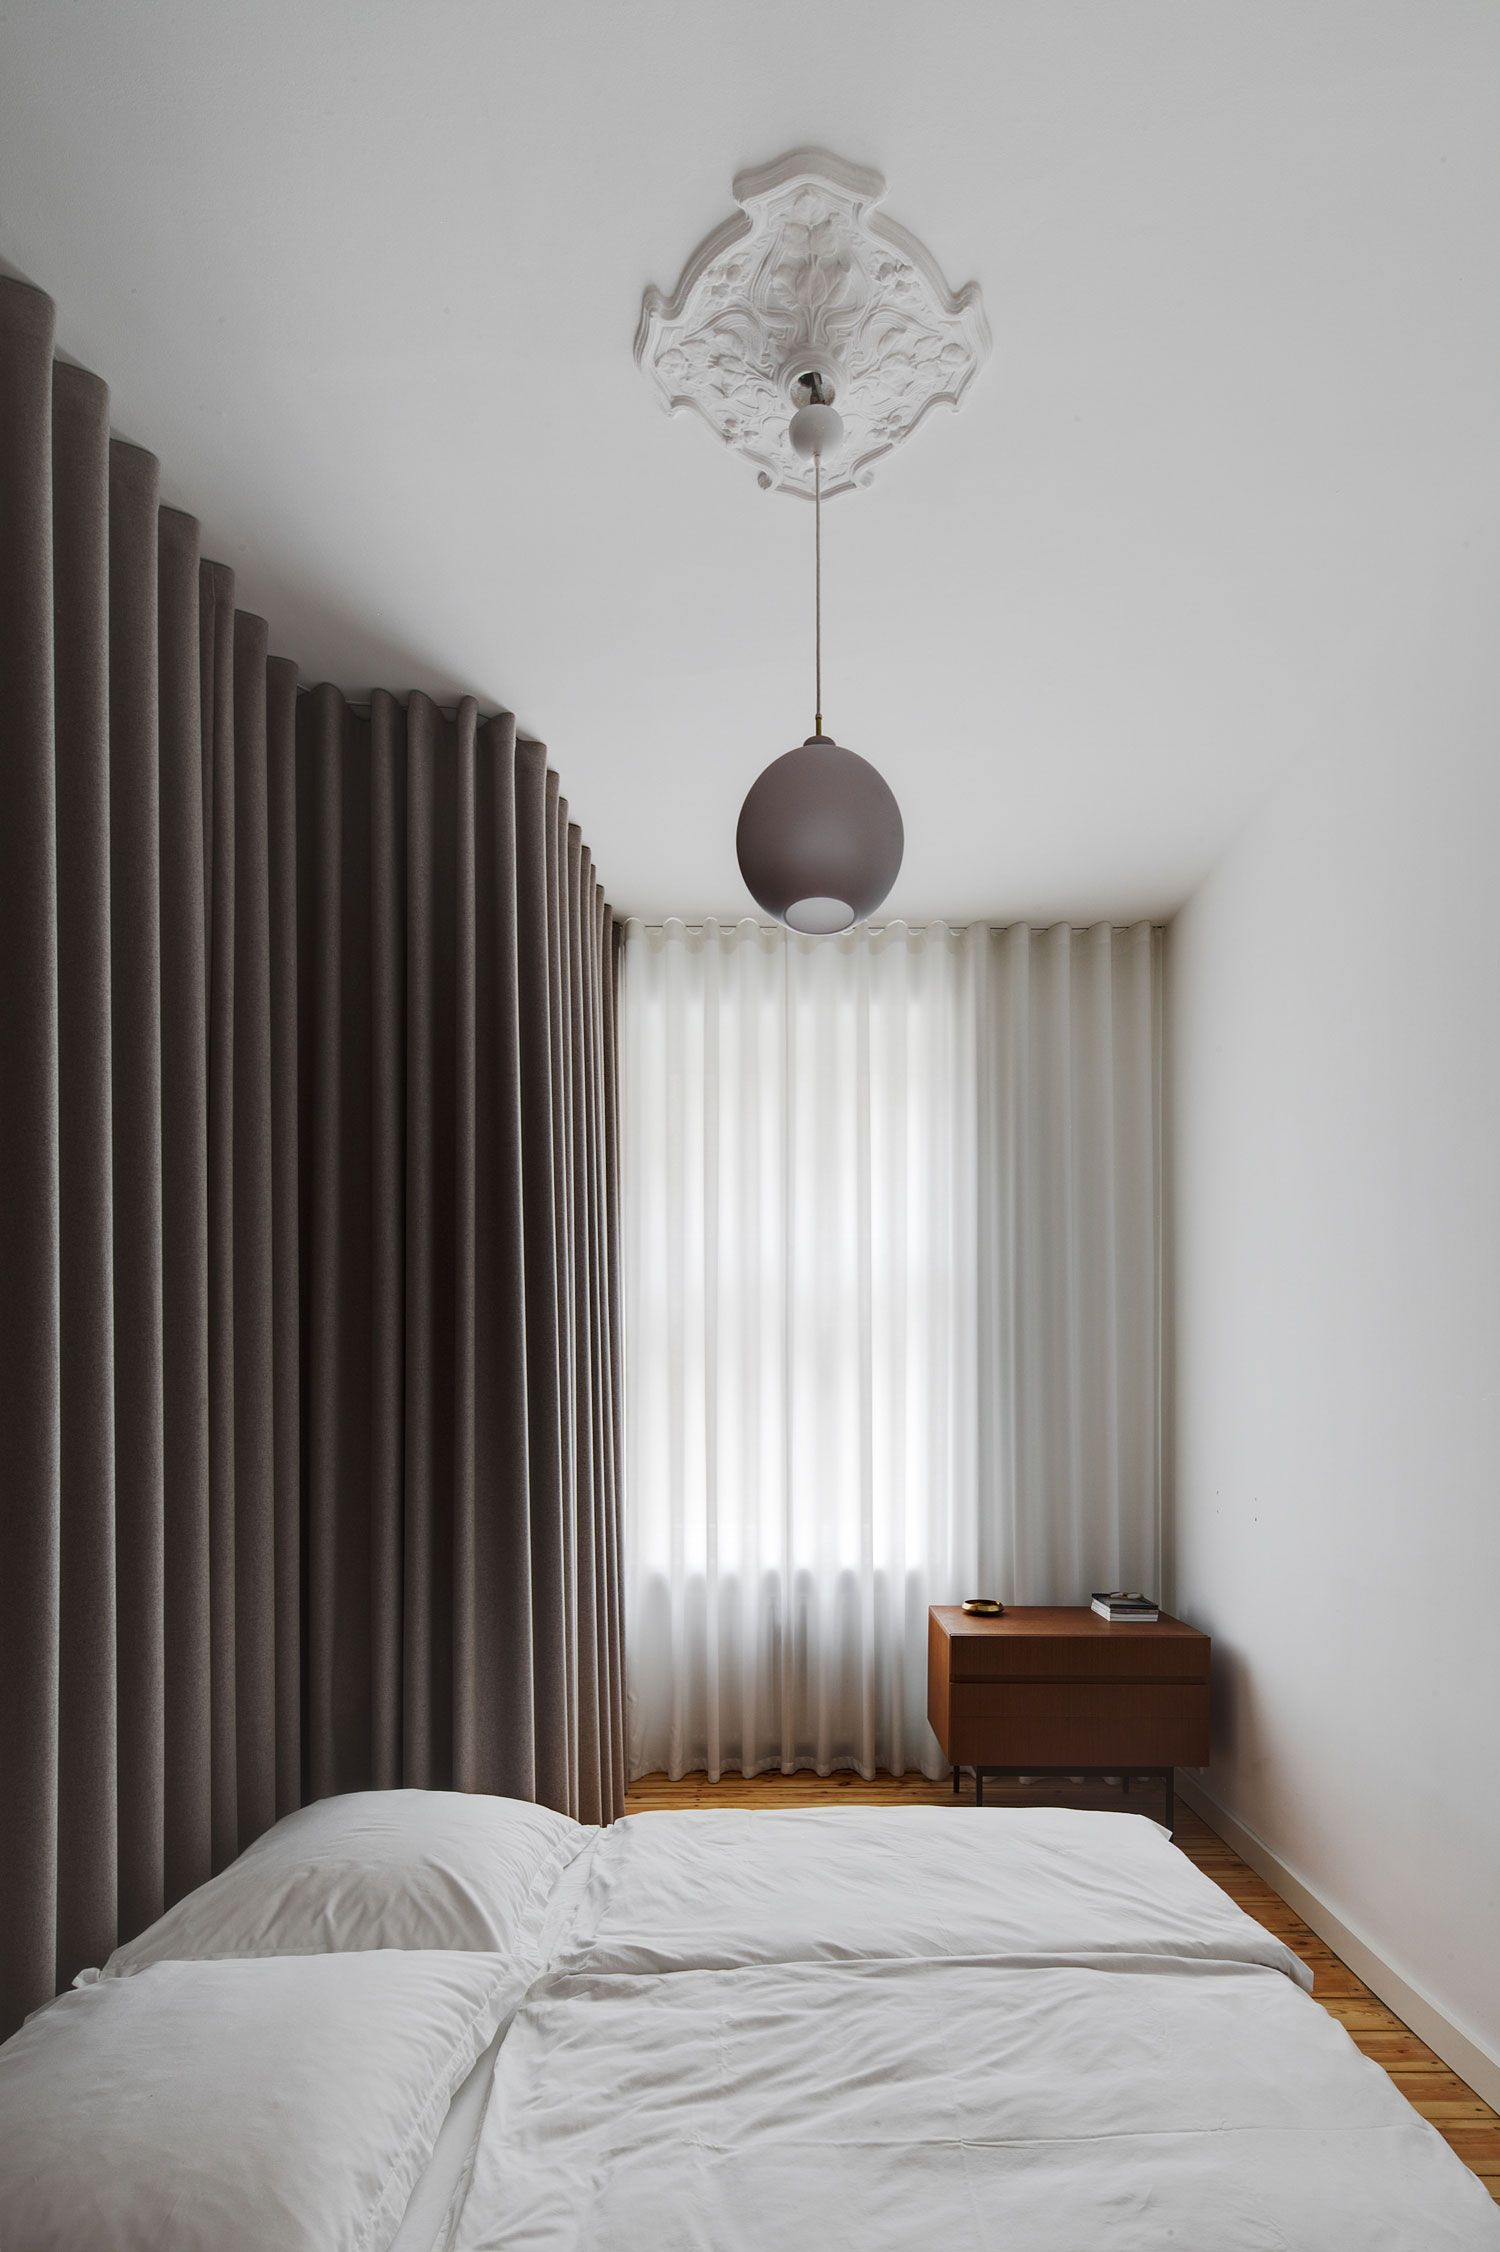 Berlin Mitte Apartment Refurbishment by Atheorem   Yellowtrace bedroom covered in curtains